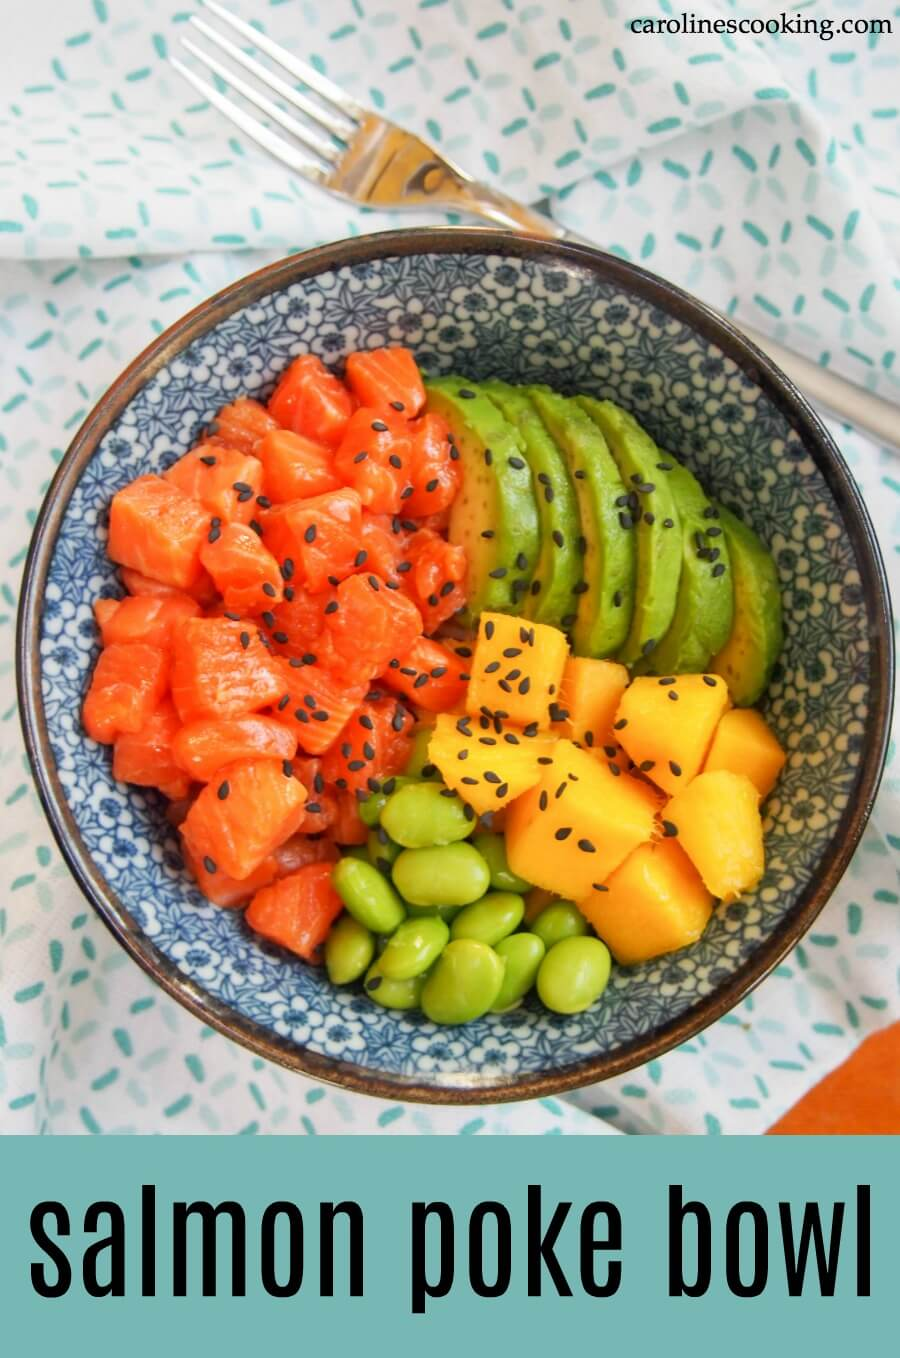 If you're a fan of healthy, fresh ingredients and quick meals, this salmon poke bowl is perfect for you! So easy to make, it comes together in no time and has so many possibilities to customize. #pokebowl #30minutemeal #seafood #rawfood #salmon